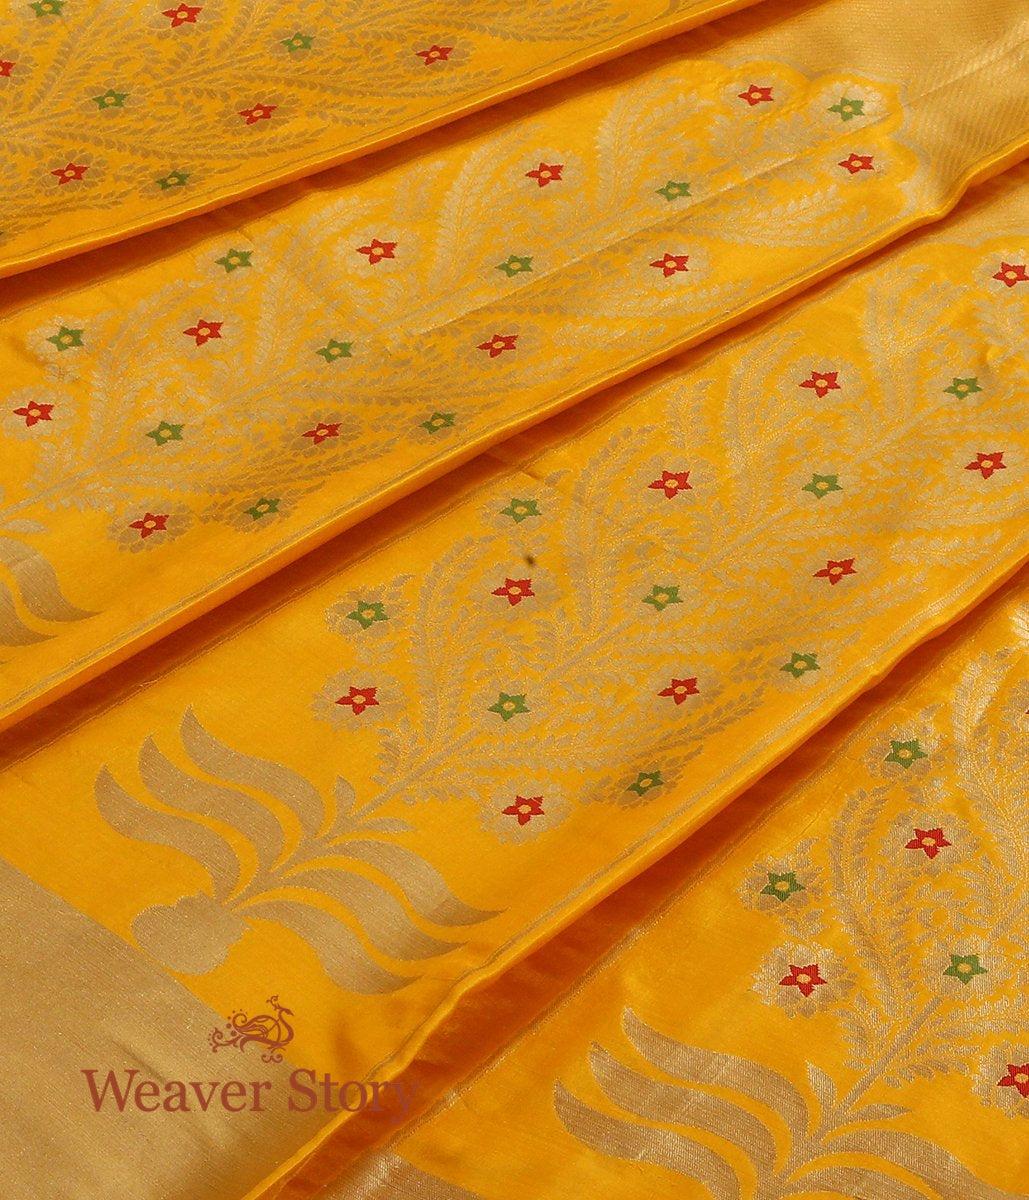 Handwoven Yellow Banarasi Lehenga with Meenakari